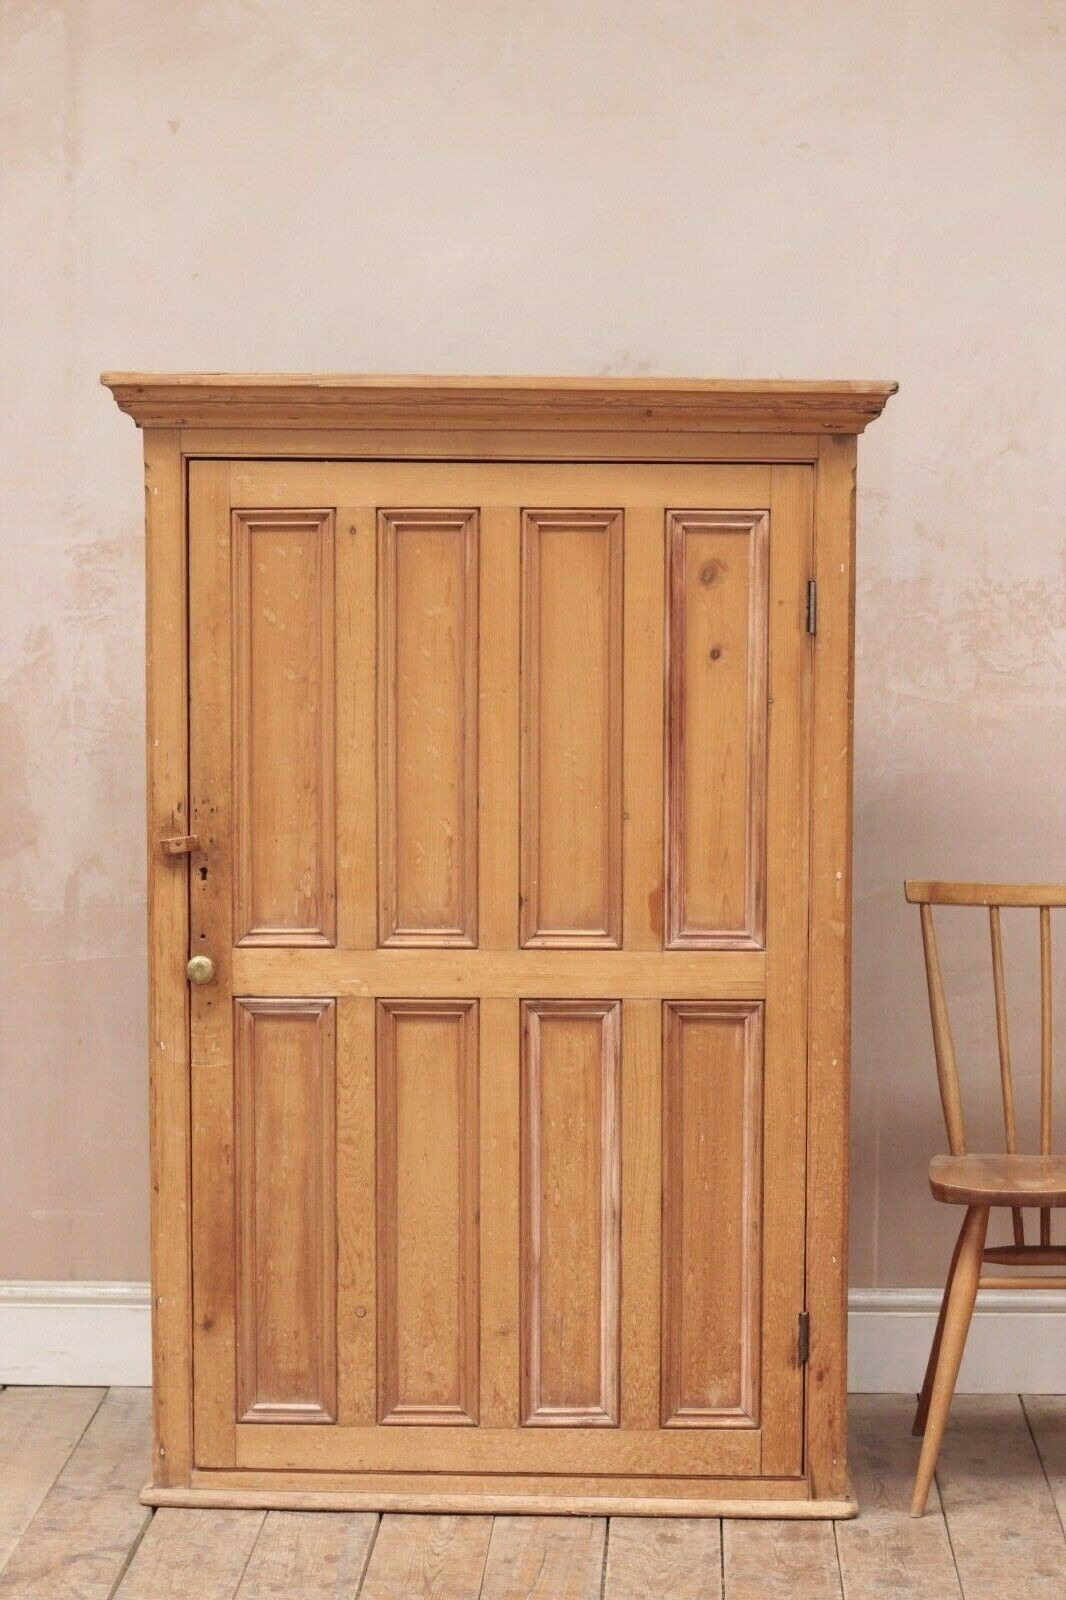 Antique Shaker Furniture Prices Awesome Antique Vintage Rustic Pine Shaker Larder Cupboard Bookcase